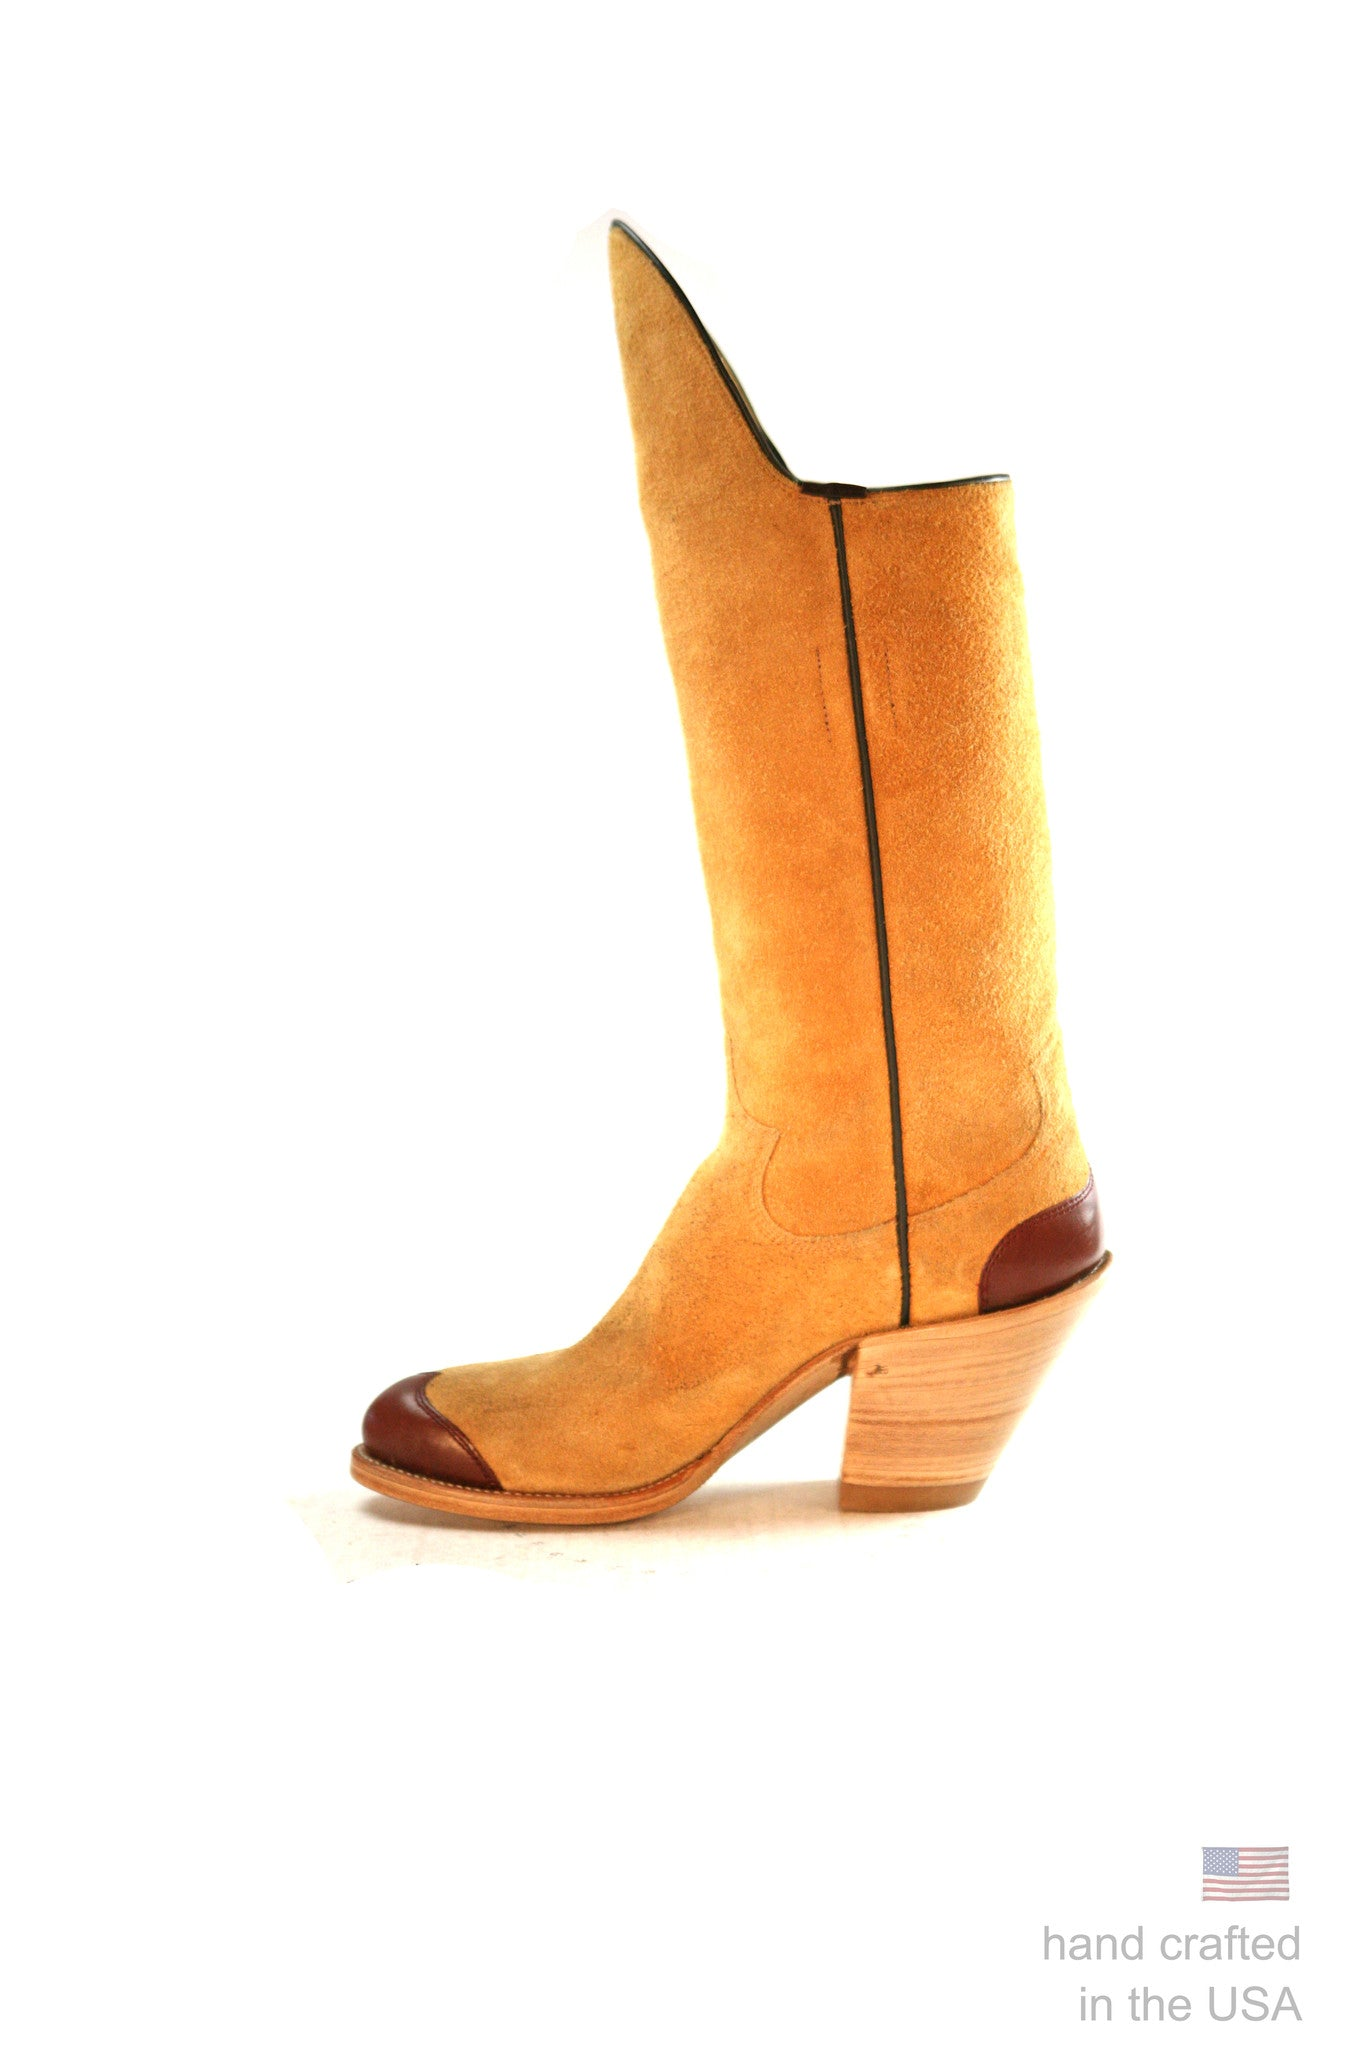 Singles: Boot 0202: Size 8 B